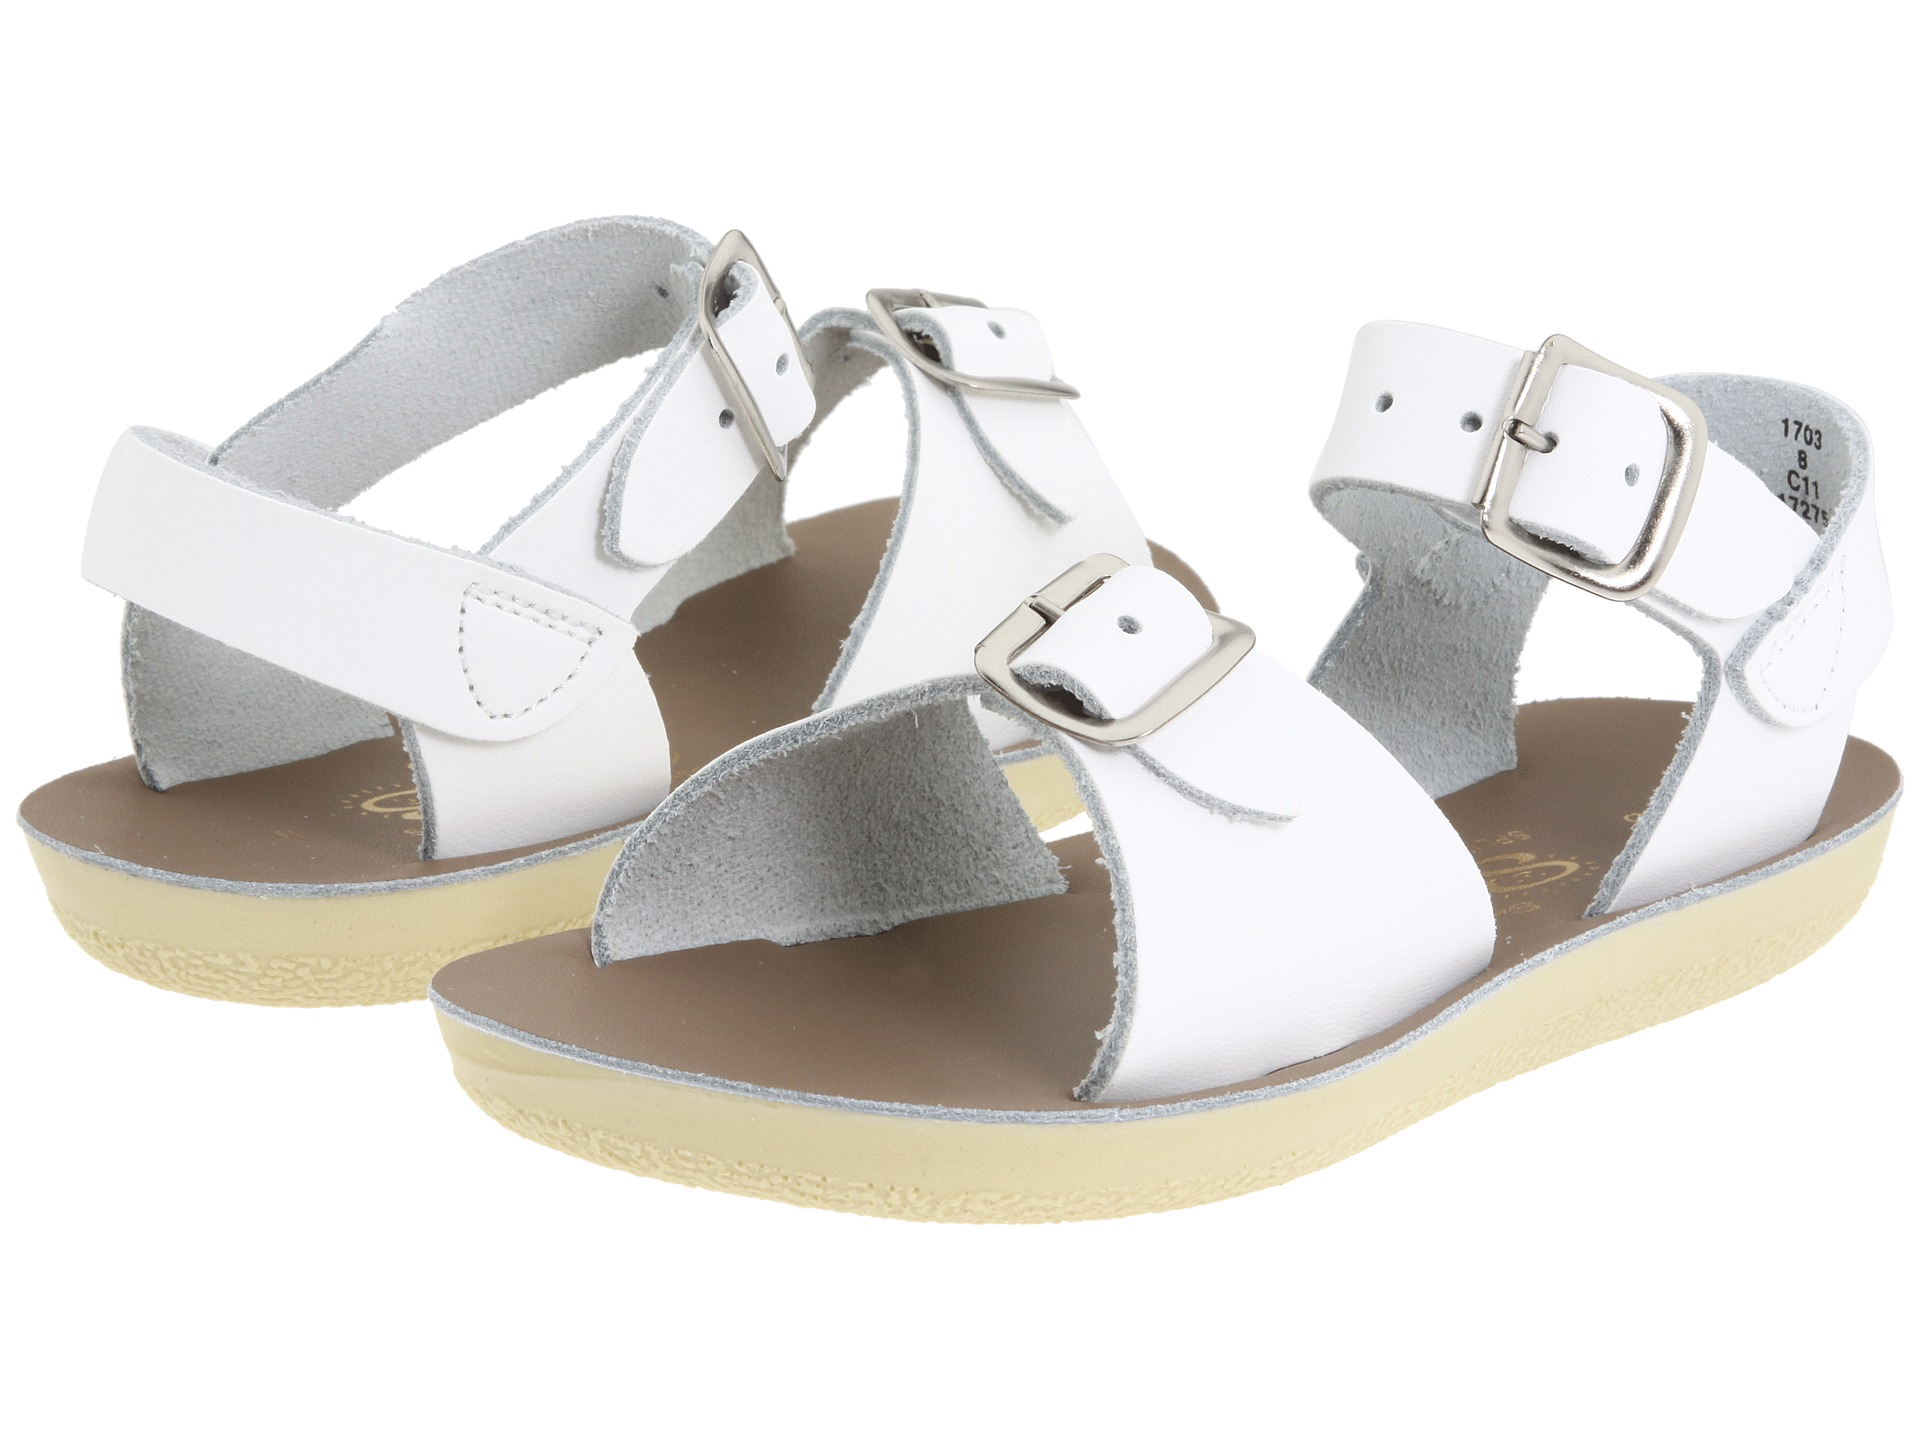 salt water sandal by hoy shoes sun san surfer toddler little kid white free. Black Bedroom Furniture Sets. Home Design Ideas